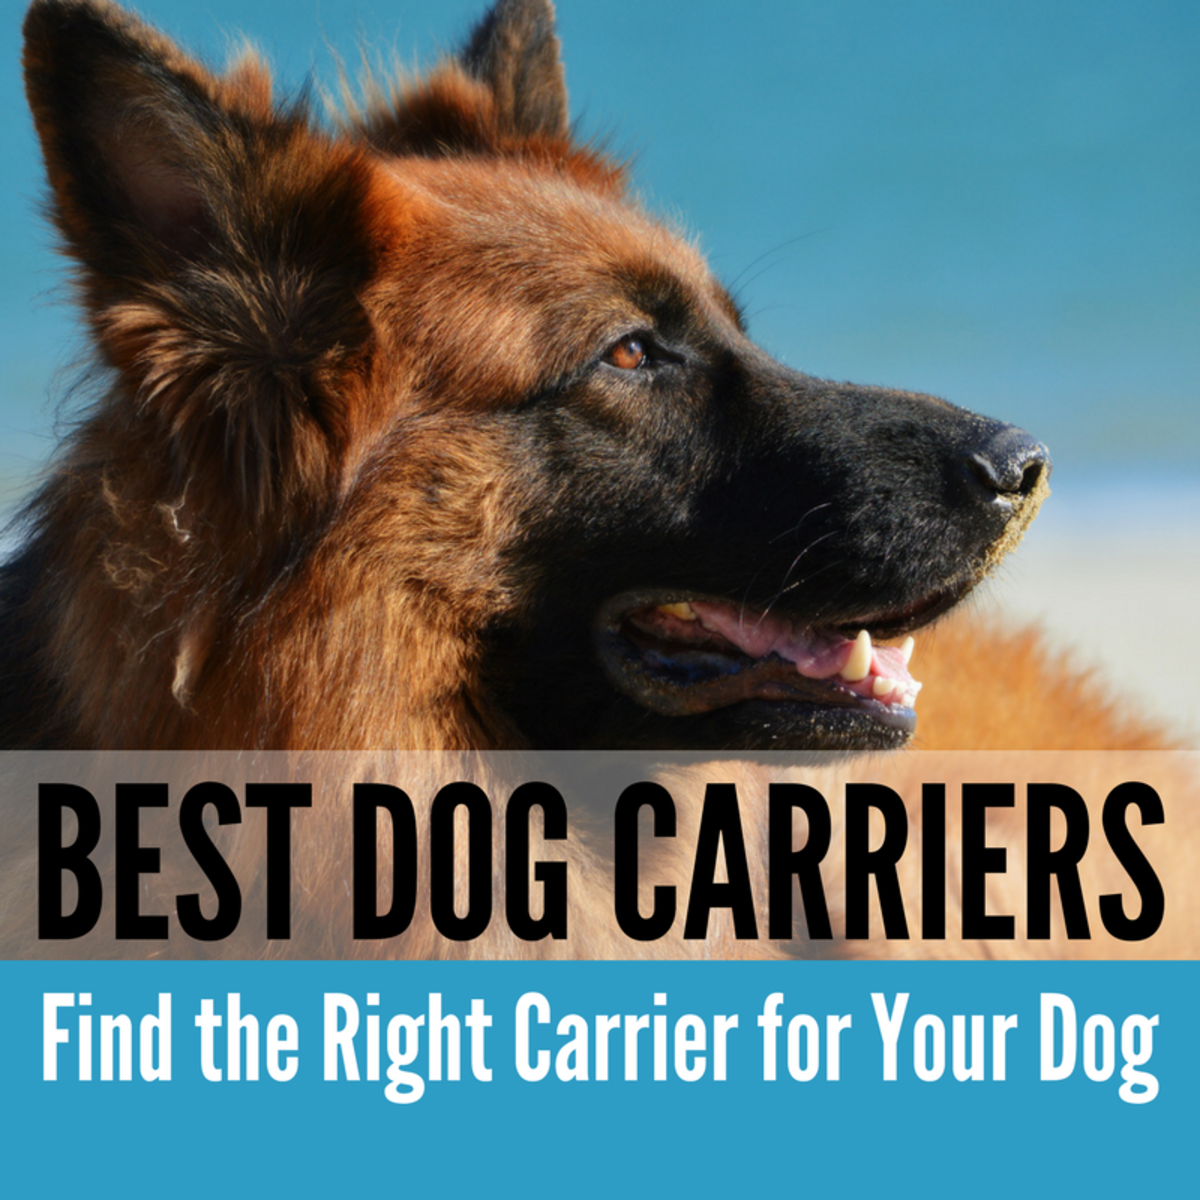 Here's everything you need to know about choosing the best size, style and brand of carrier for your dog.